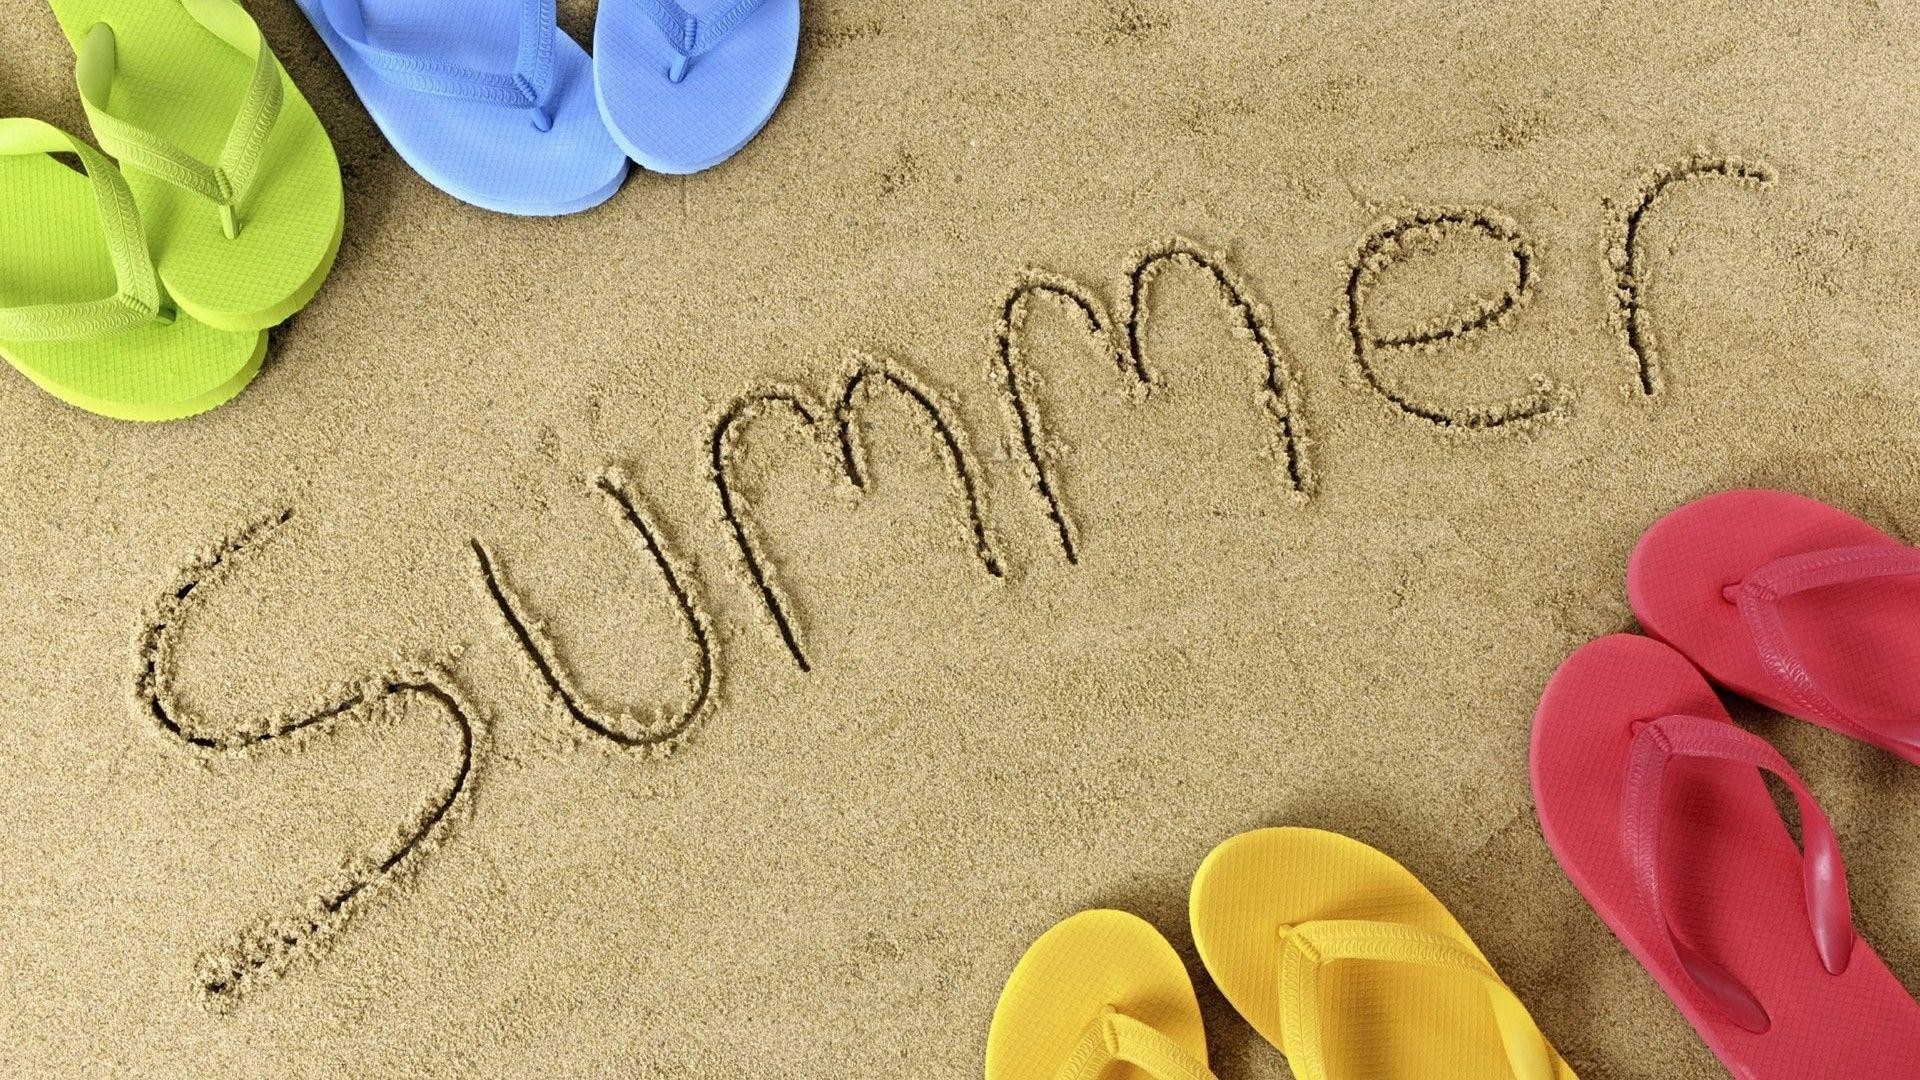 Res: 1920x1080, Summer Backgrounds Free Art Wallpapers